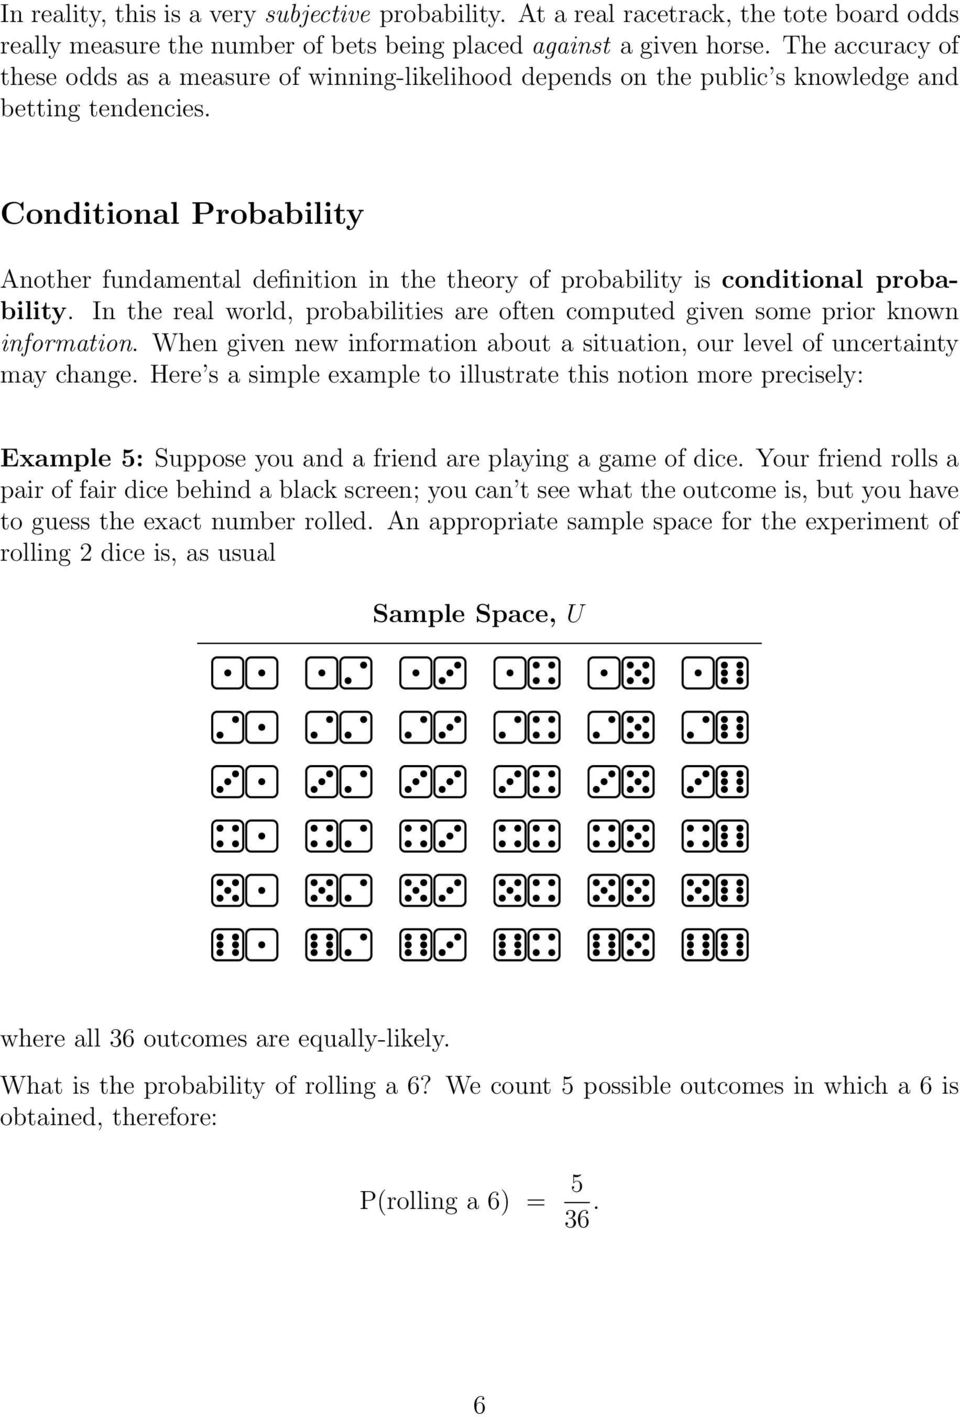 Conditional Probability Another fundamental definition in the theory of probability is conditional probability. In the real world, probabilities are often computed given some prior known information.